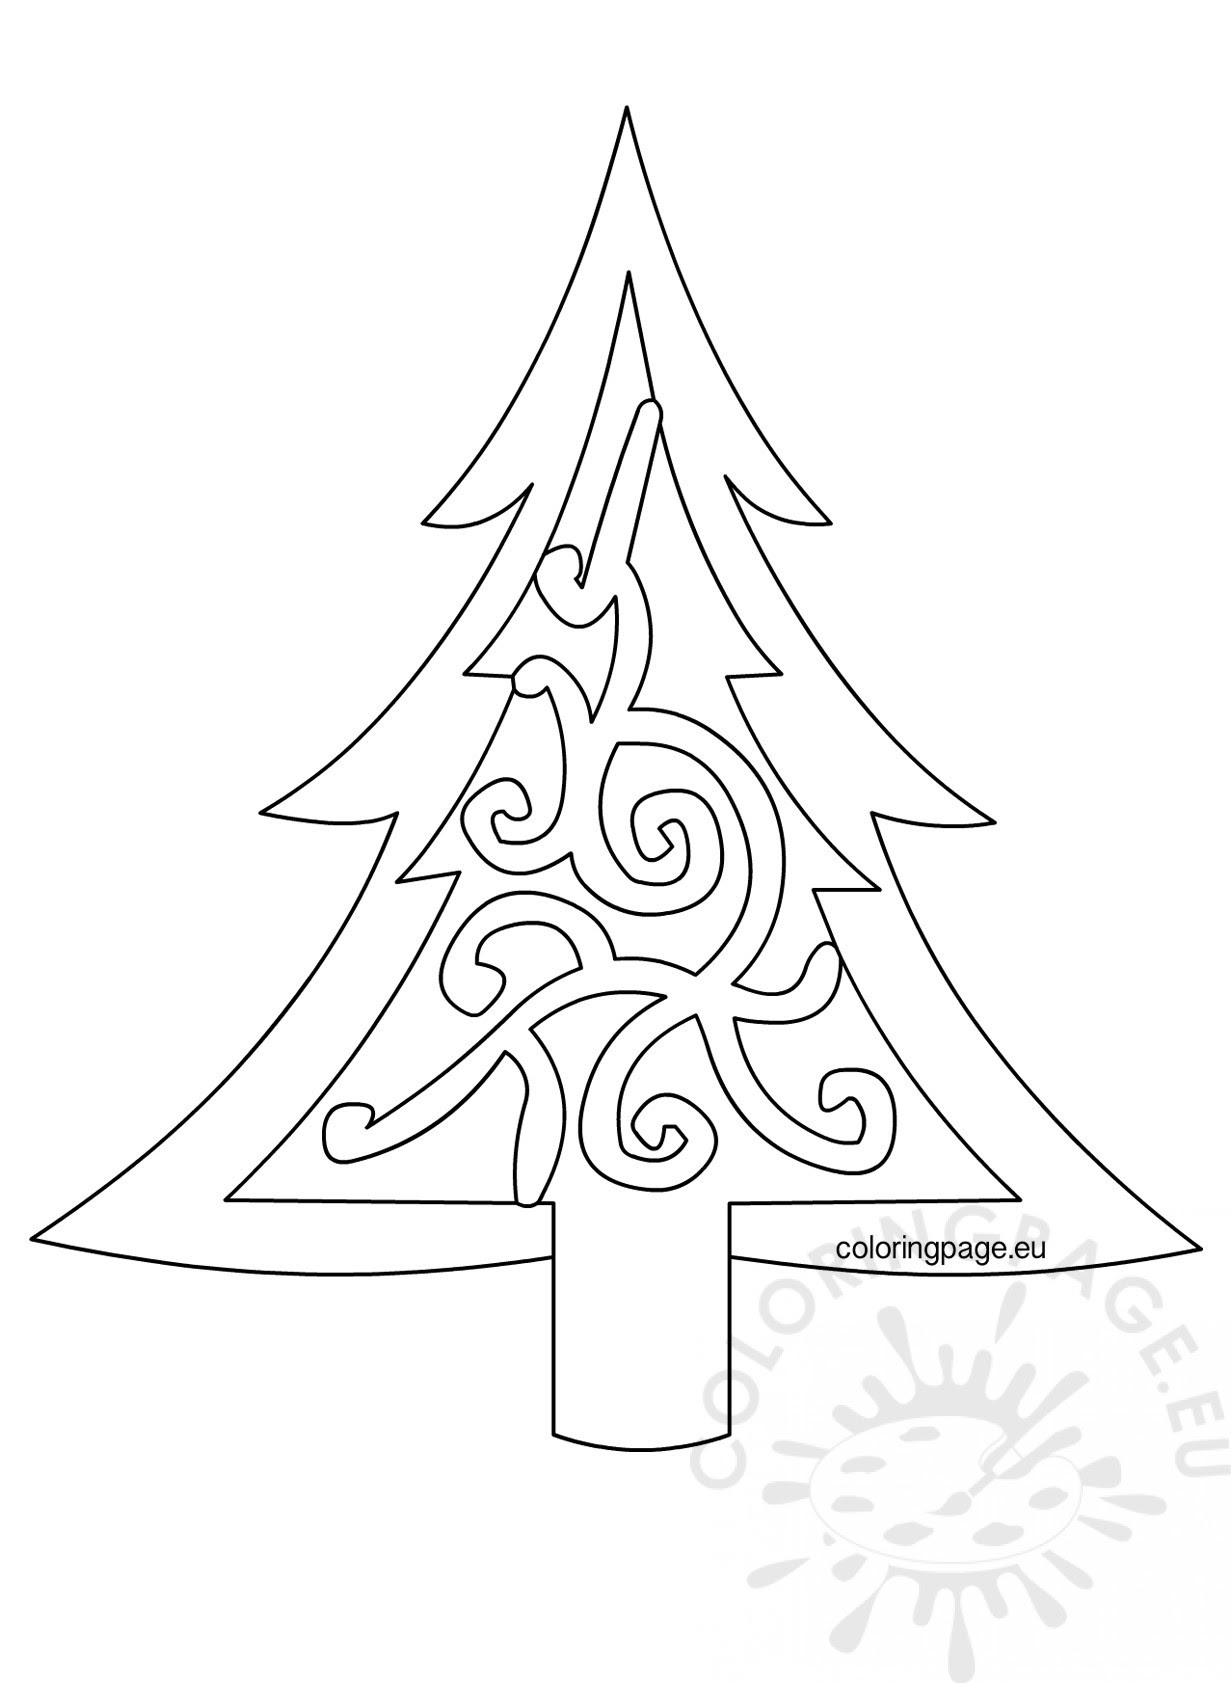 Xmas tree template printable - Coloring Page